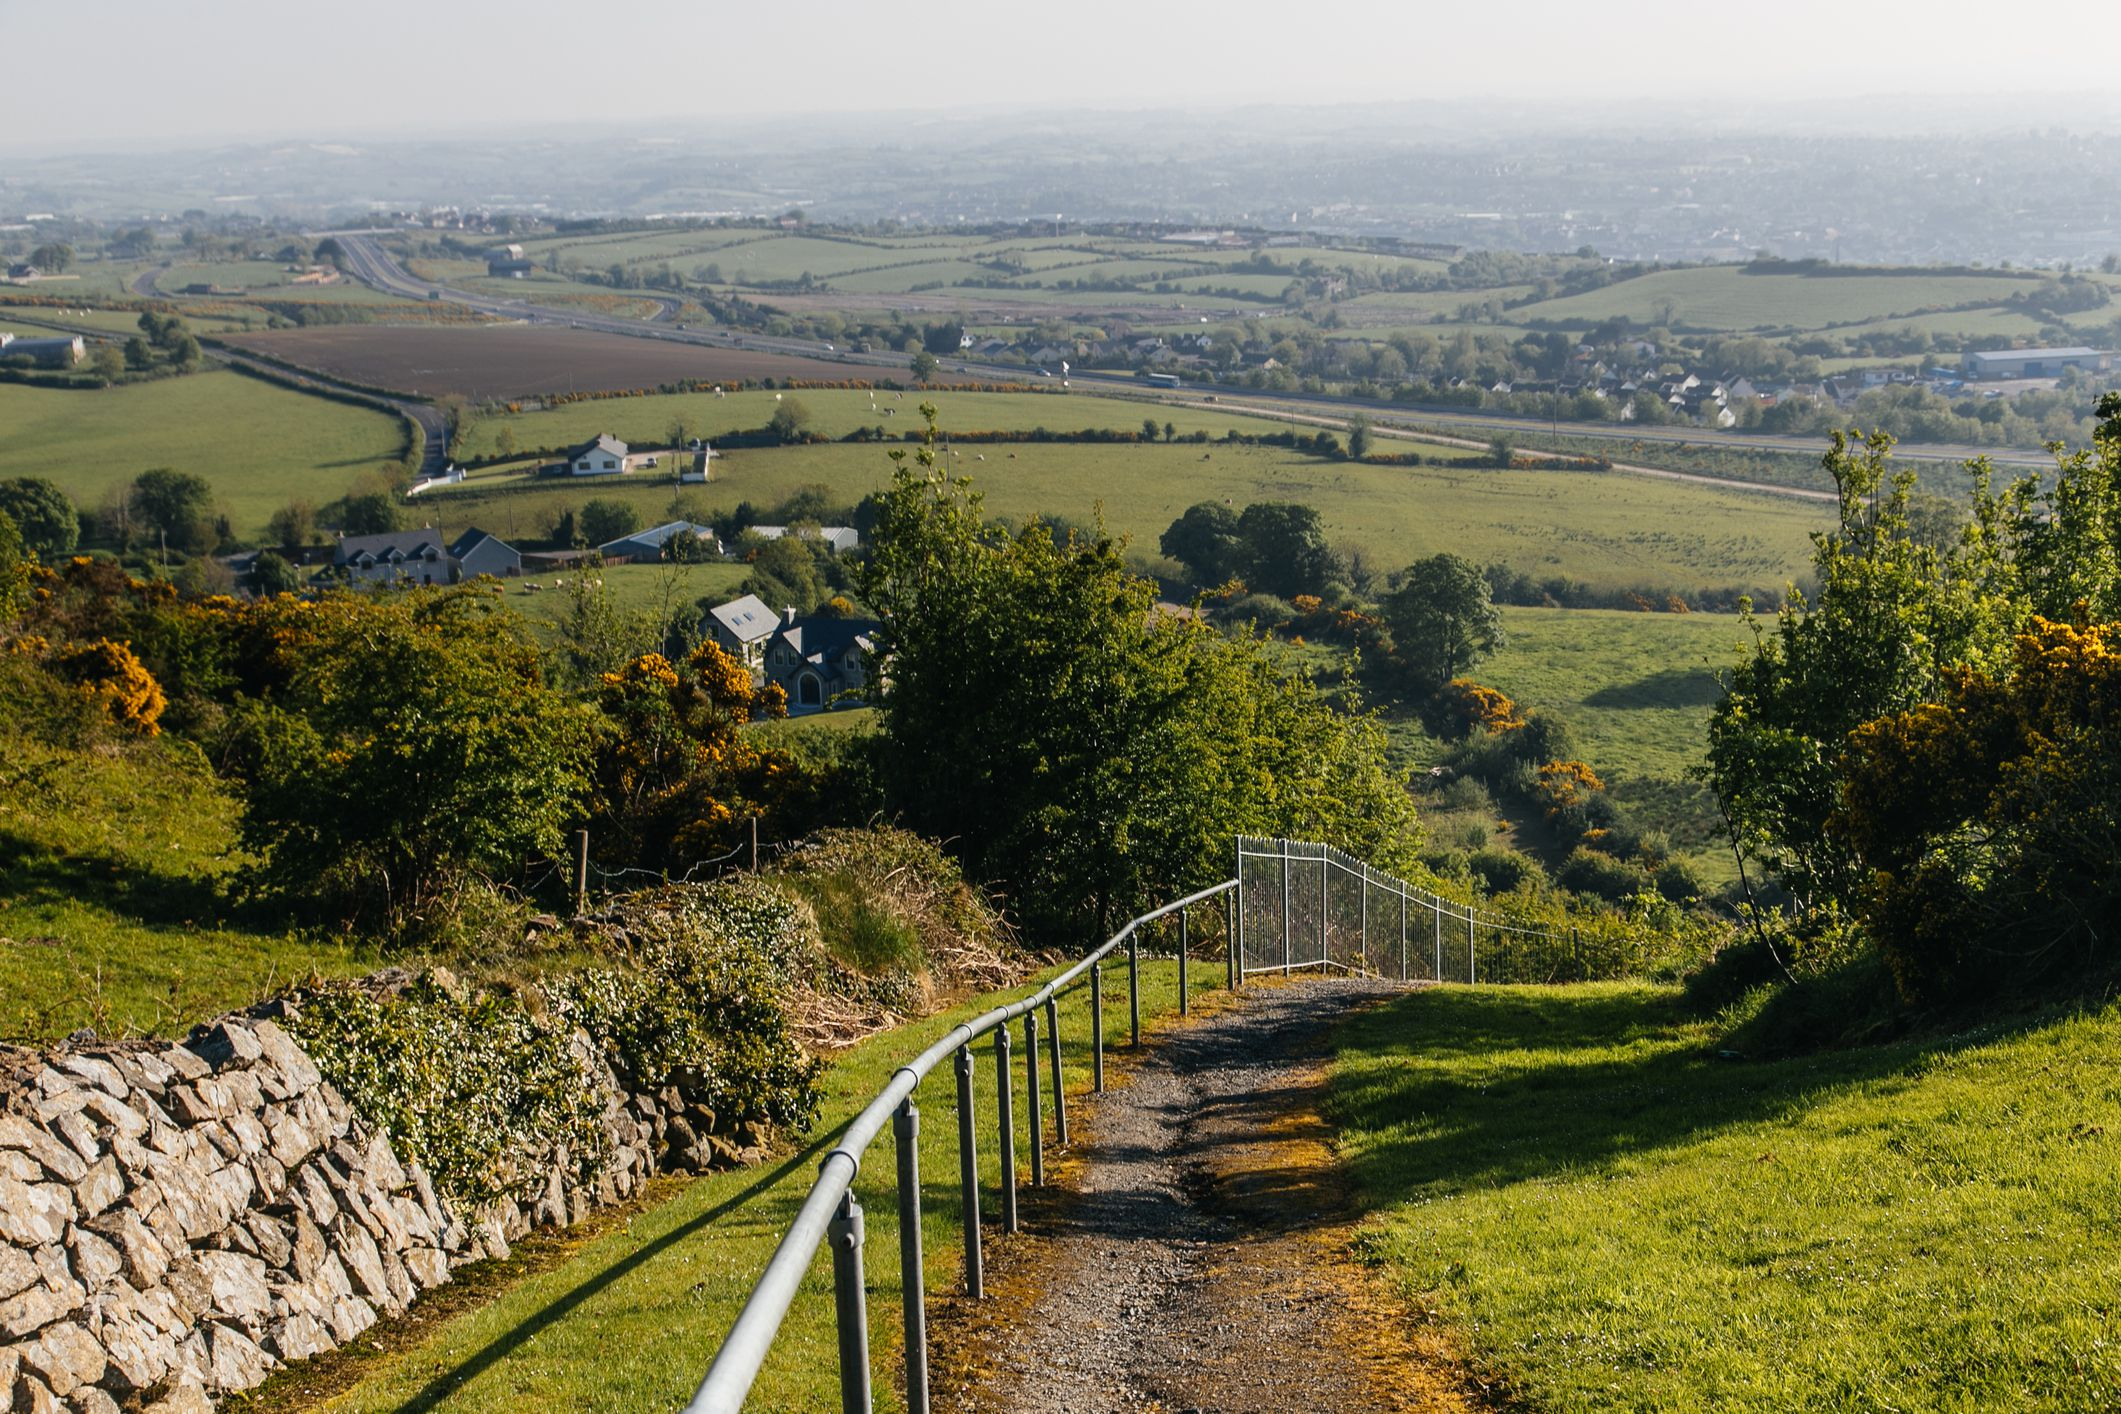 Road down the hill from Bernish viewpoint near Newry, Northern Ireland